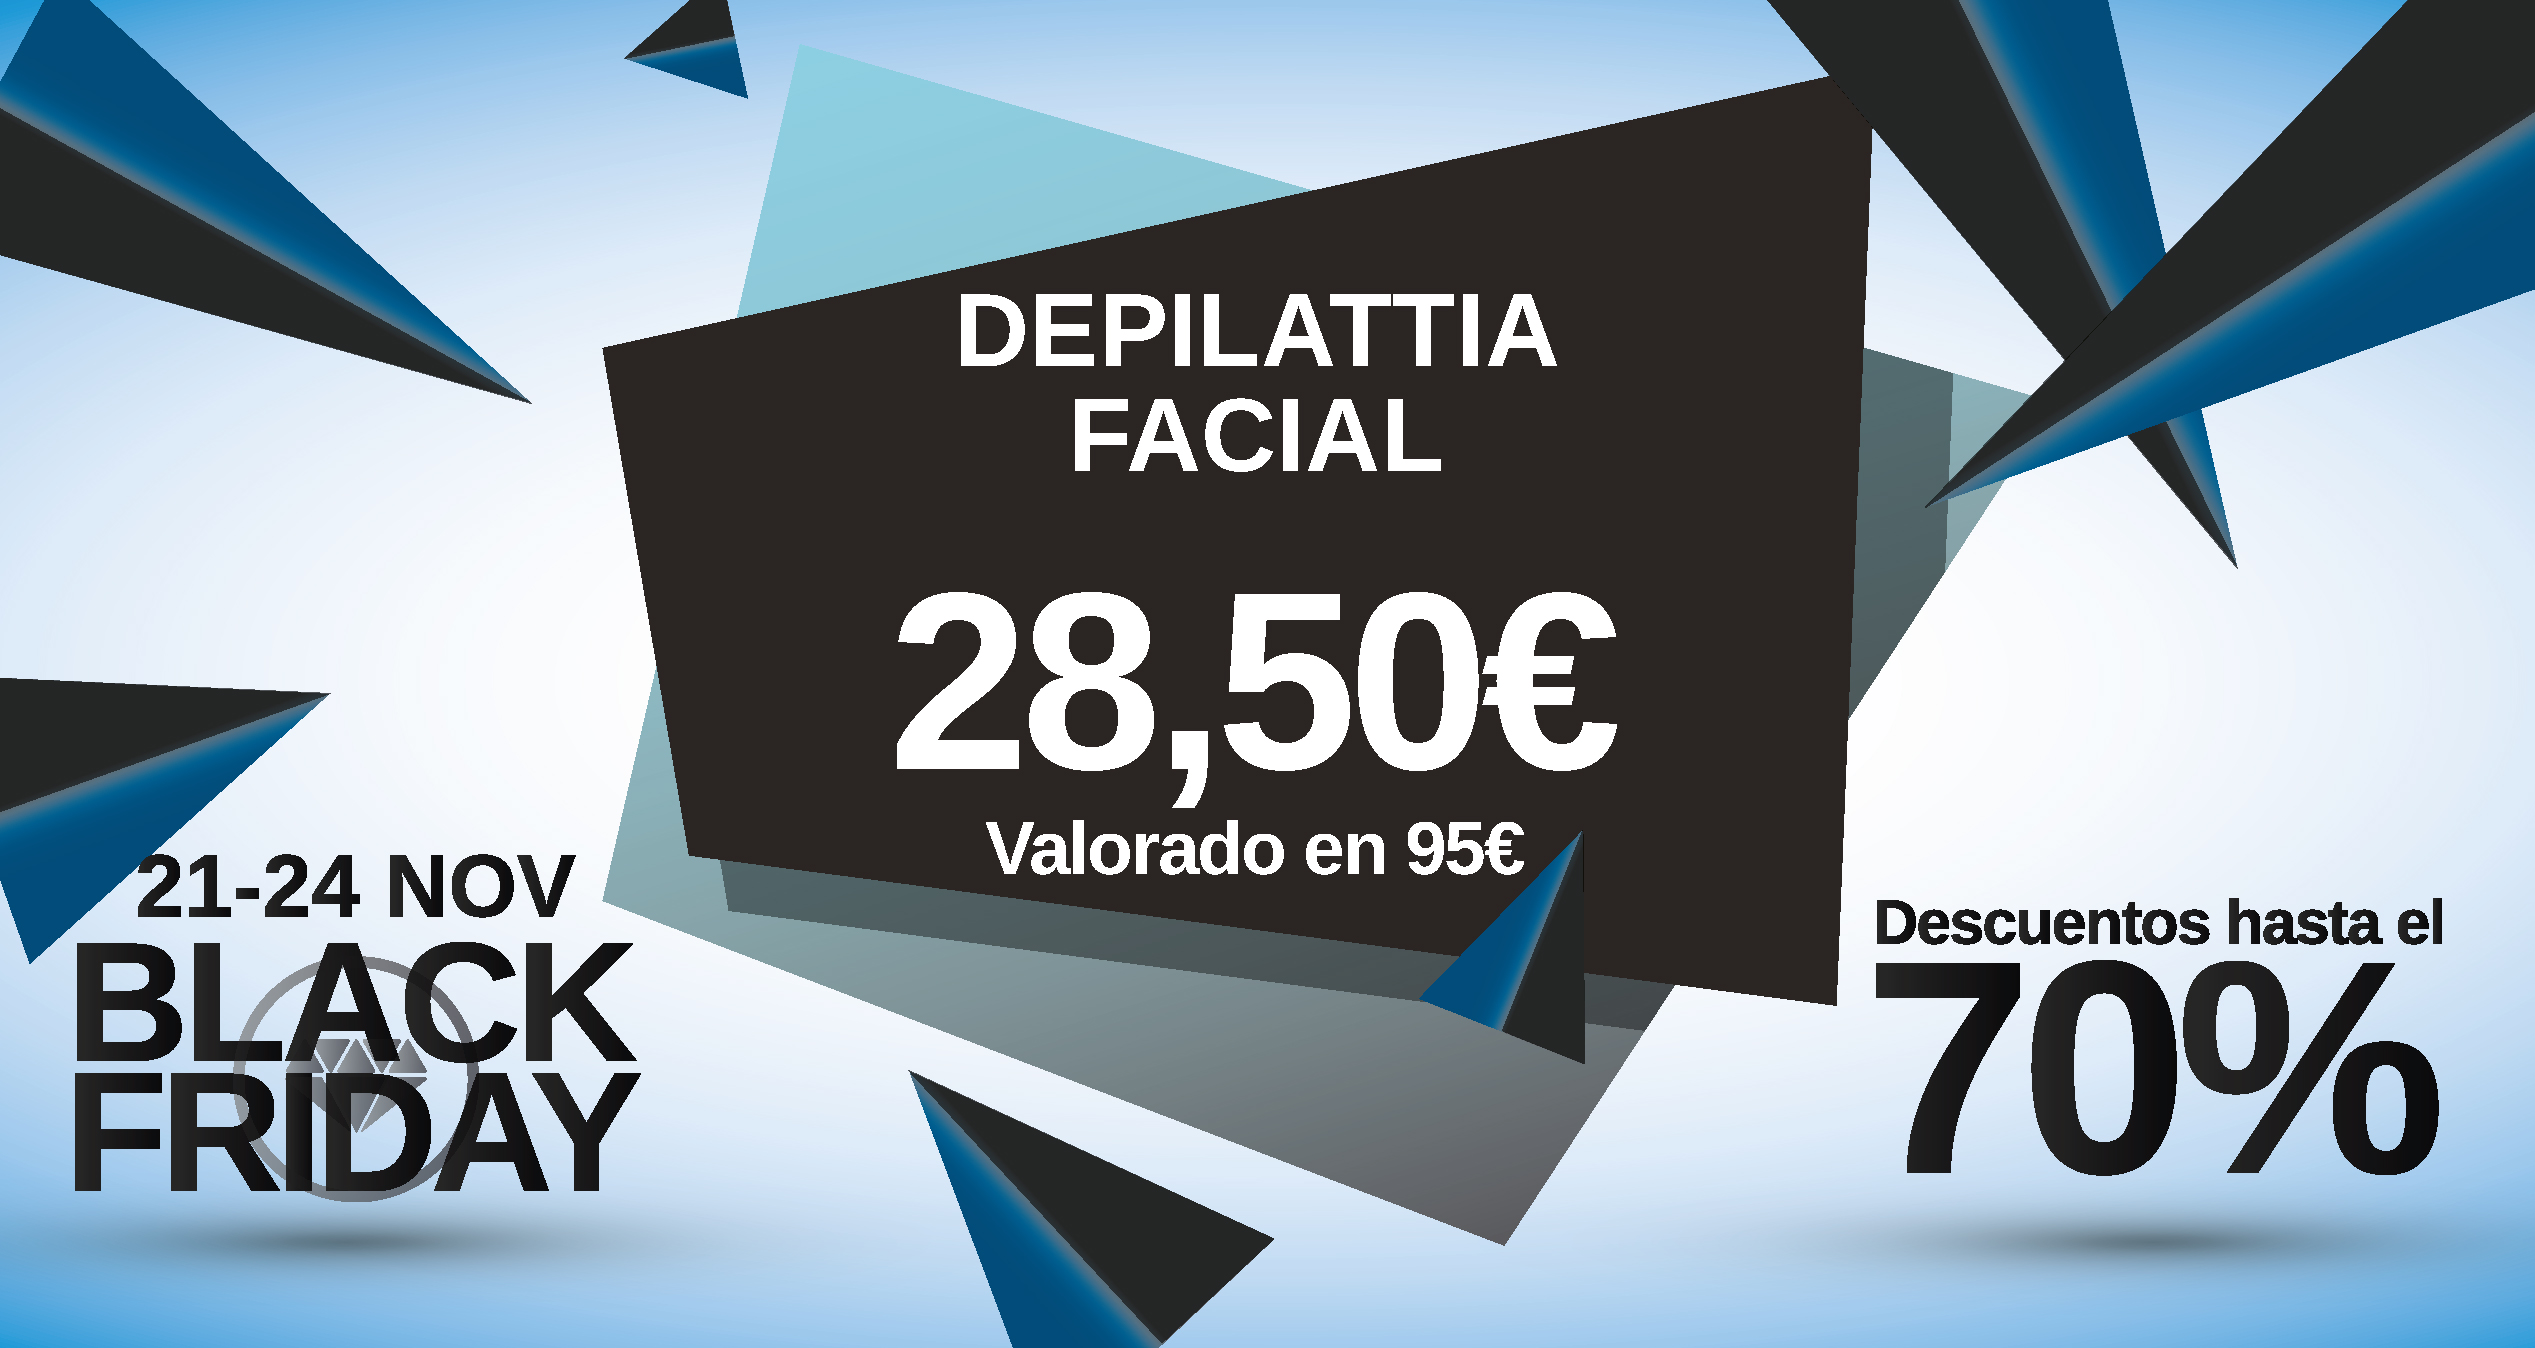 AAFF-Black-friday-depilattia-spa_facial-FACEBOOK